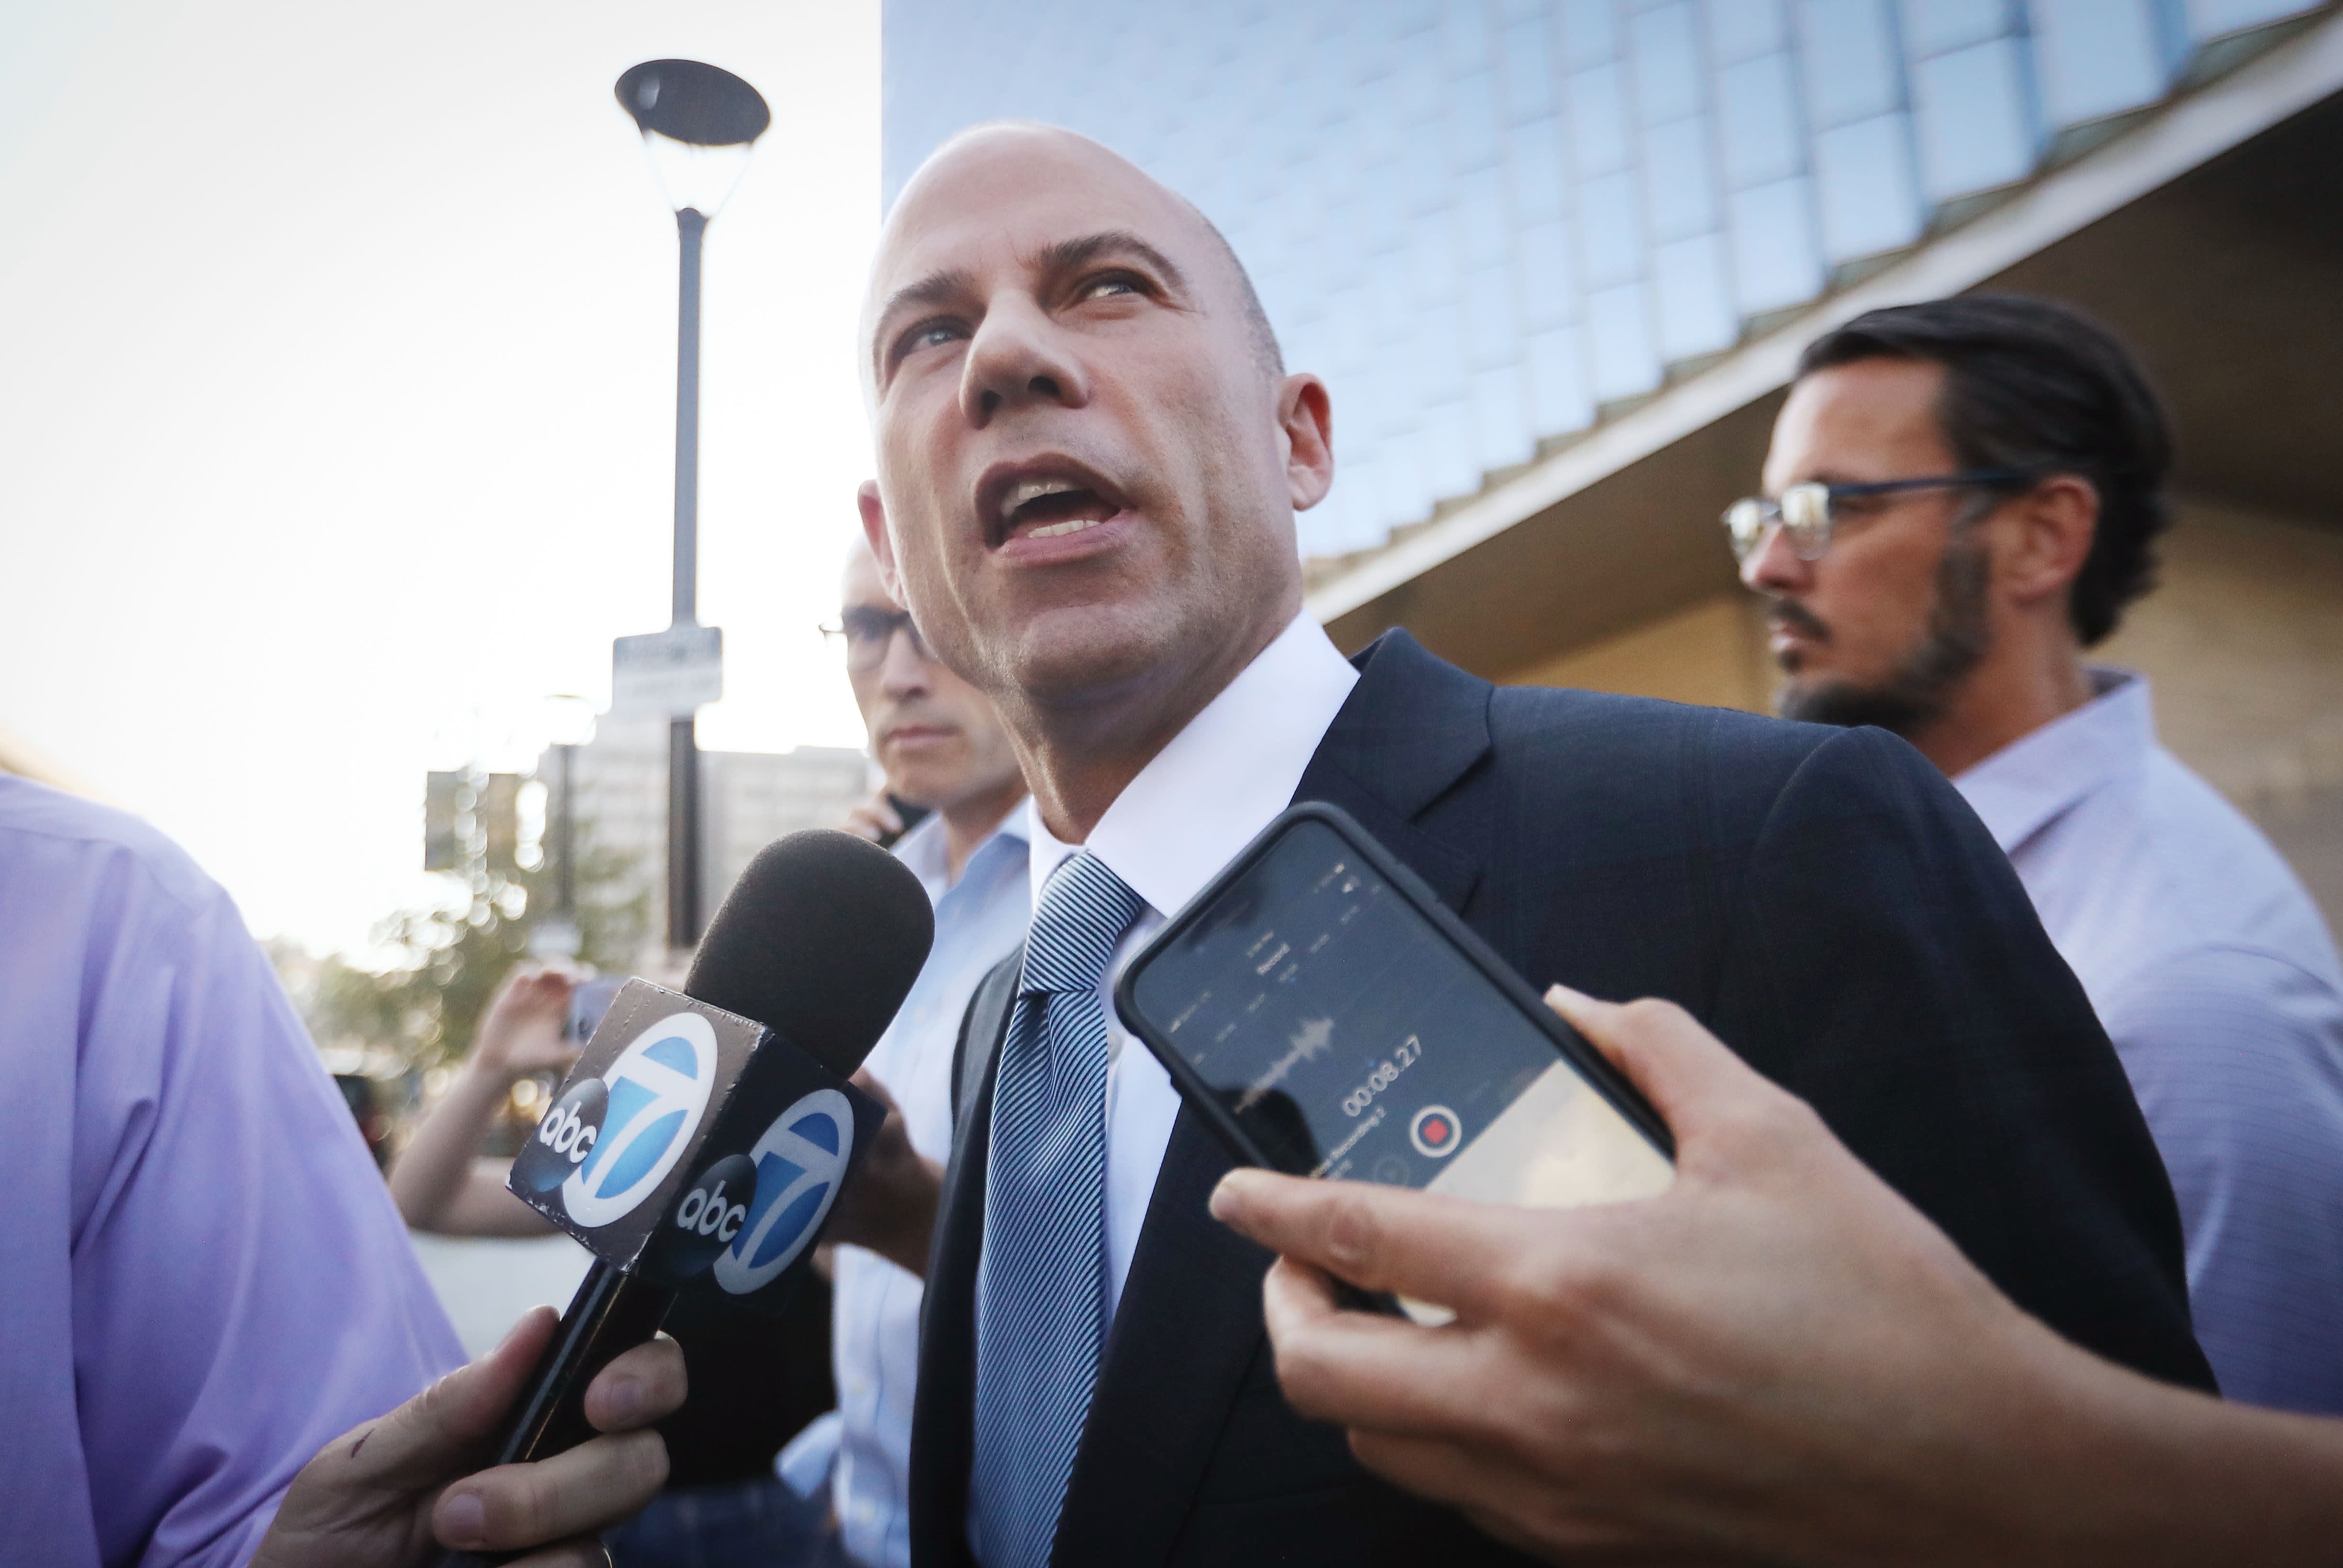 pictures Witness to alleged Kavanaugh misconduct says Avenatti twisted her words